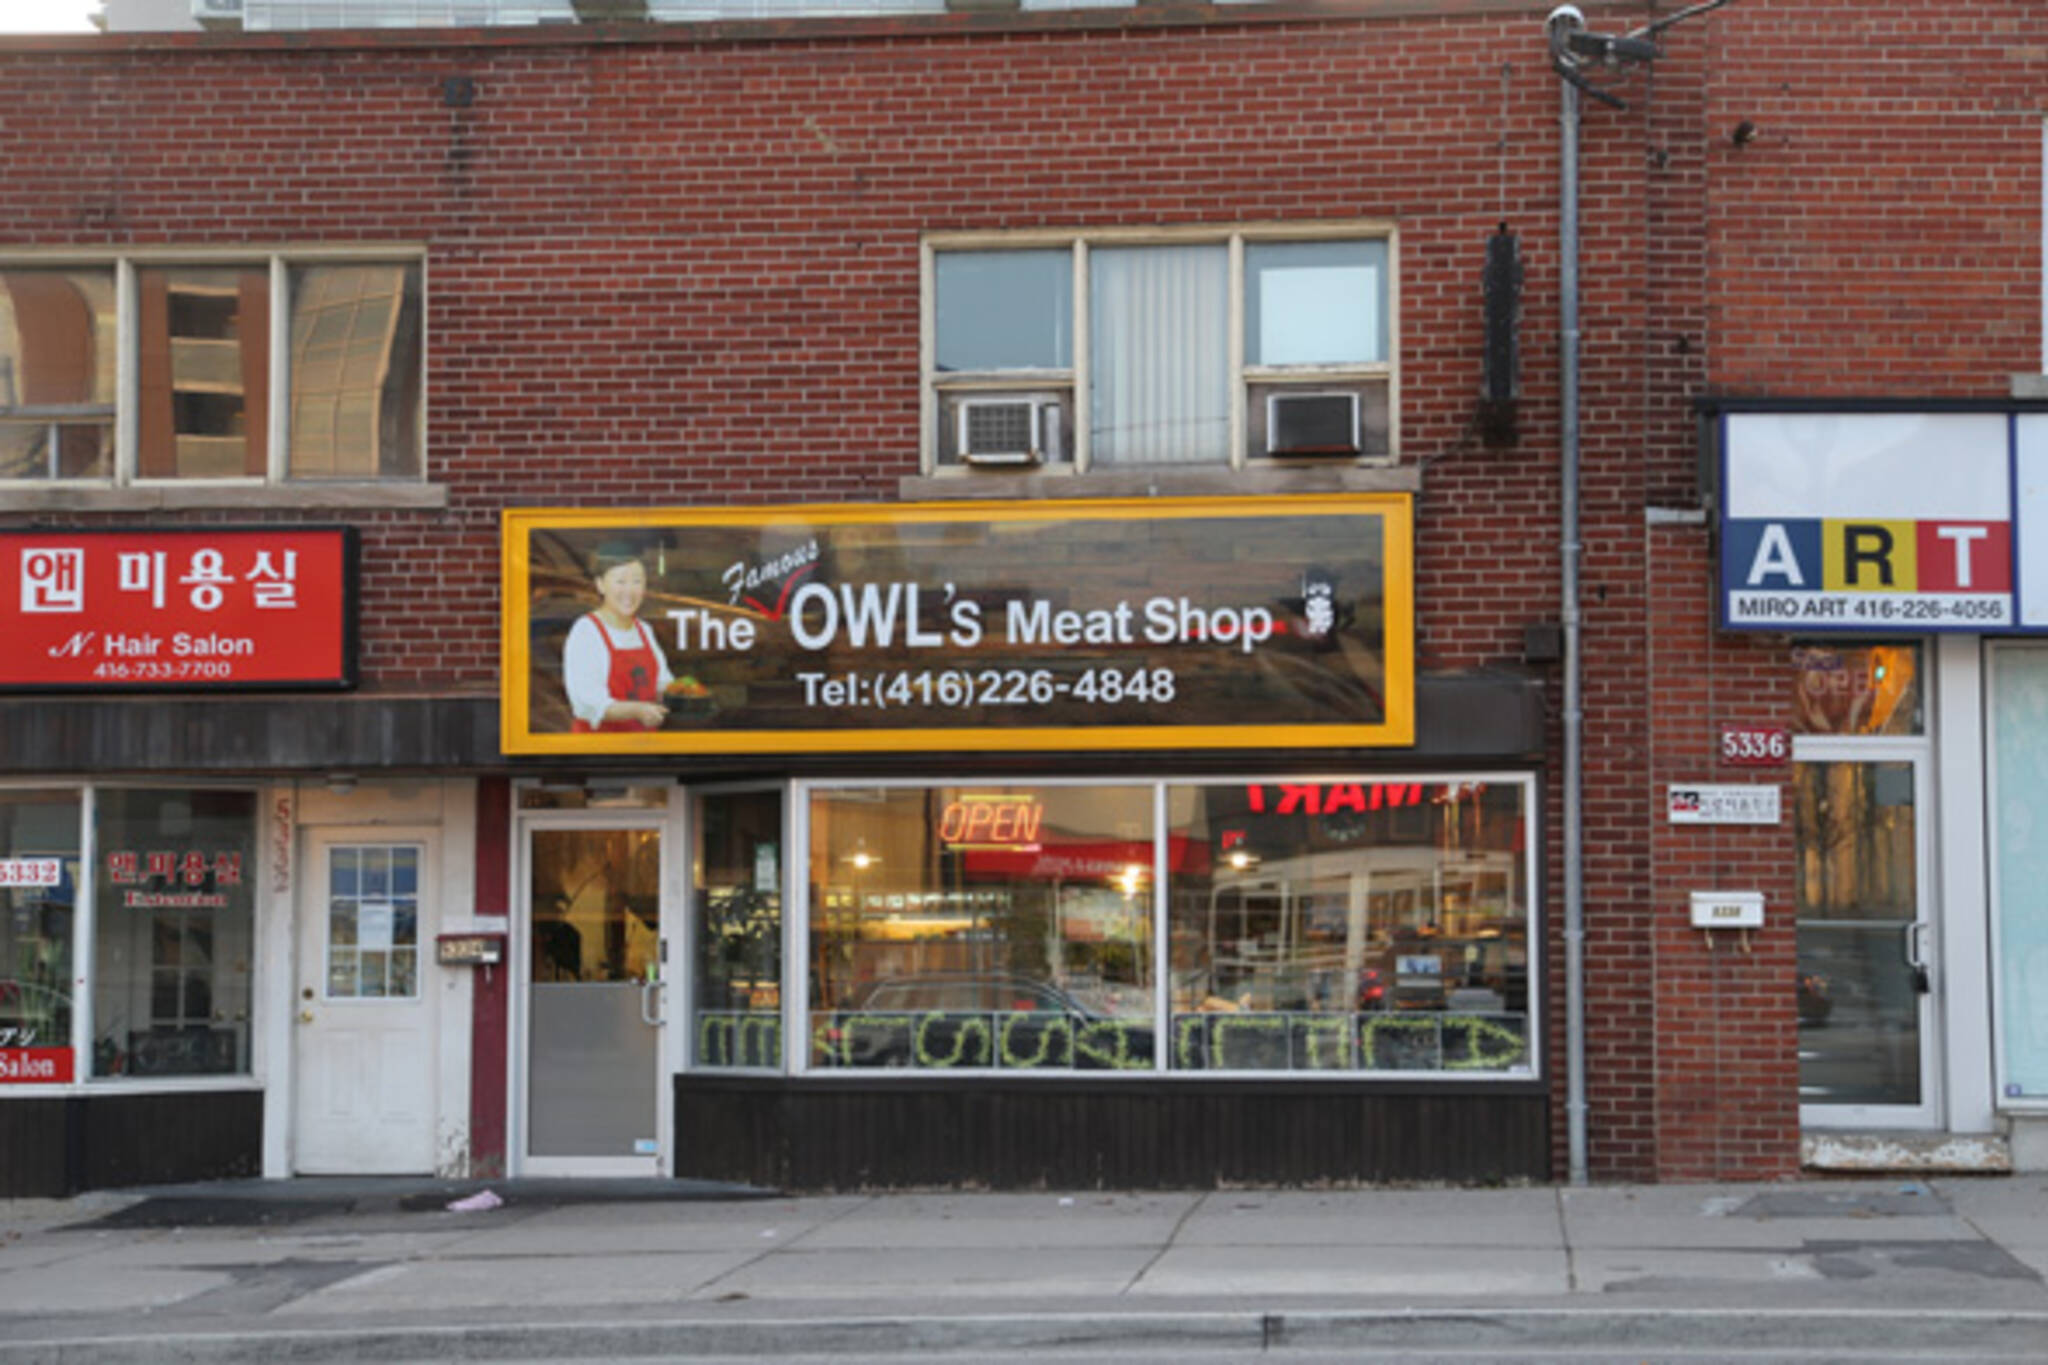 The OWL's Meat Shop